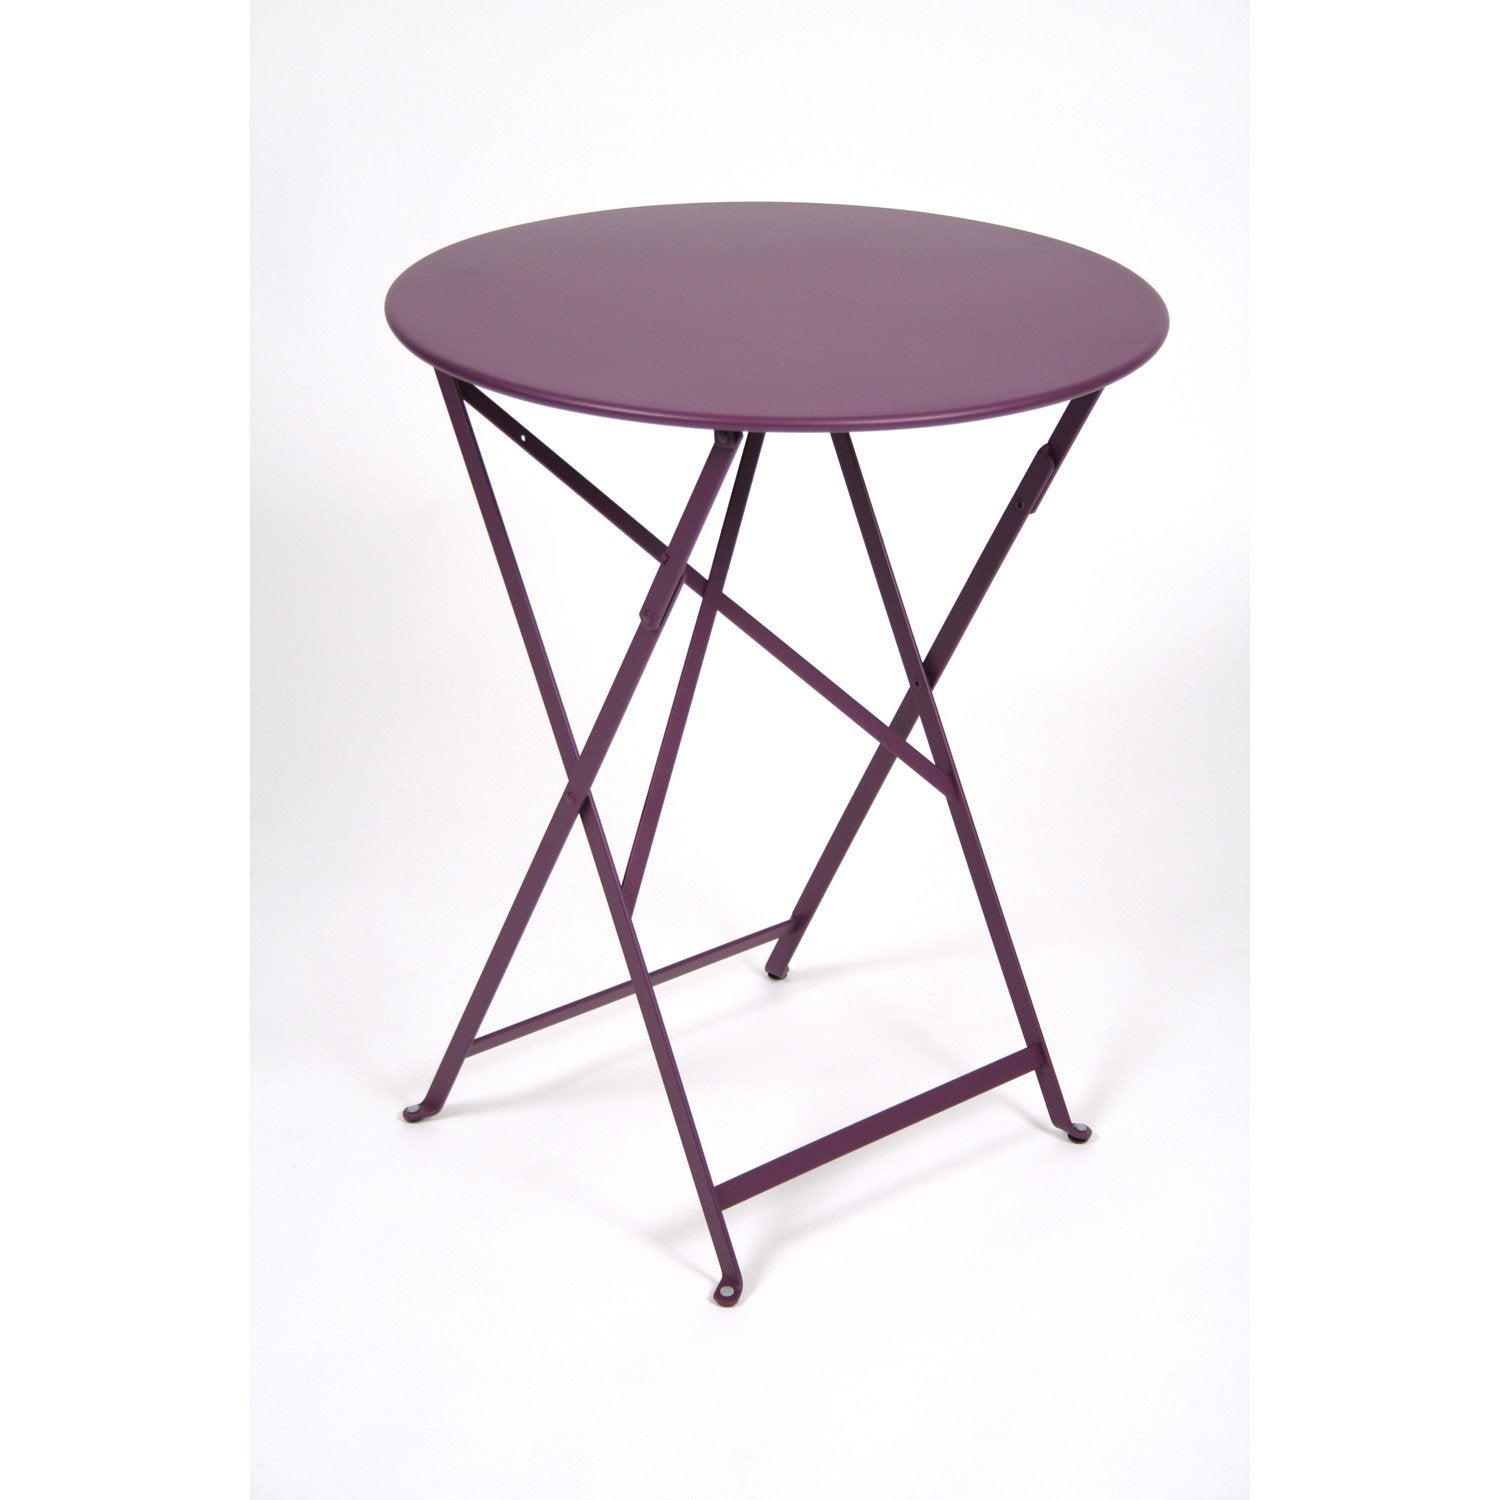 Table de jardin ronde bistro fermob leroy merlin - Table exterieur ronde ...